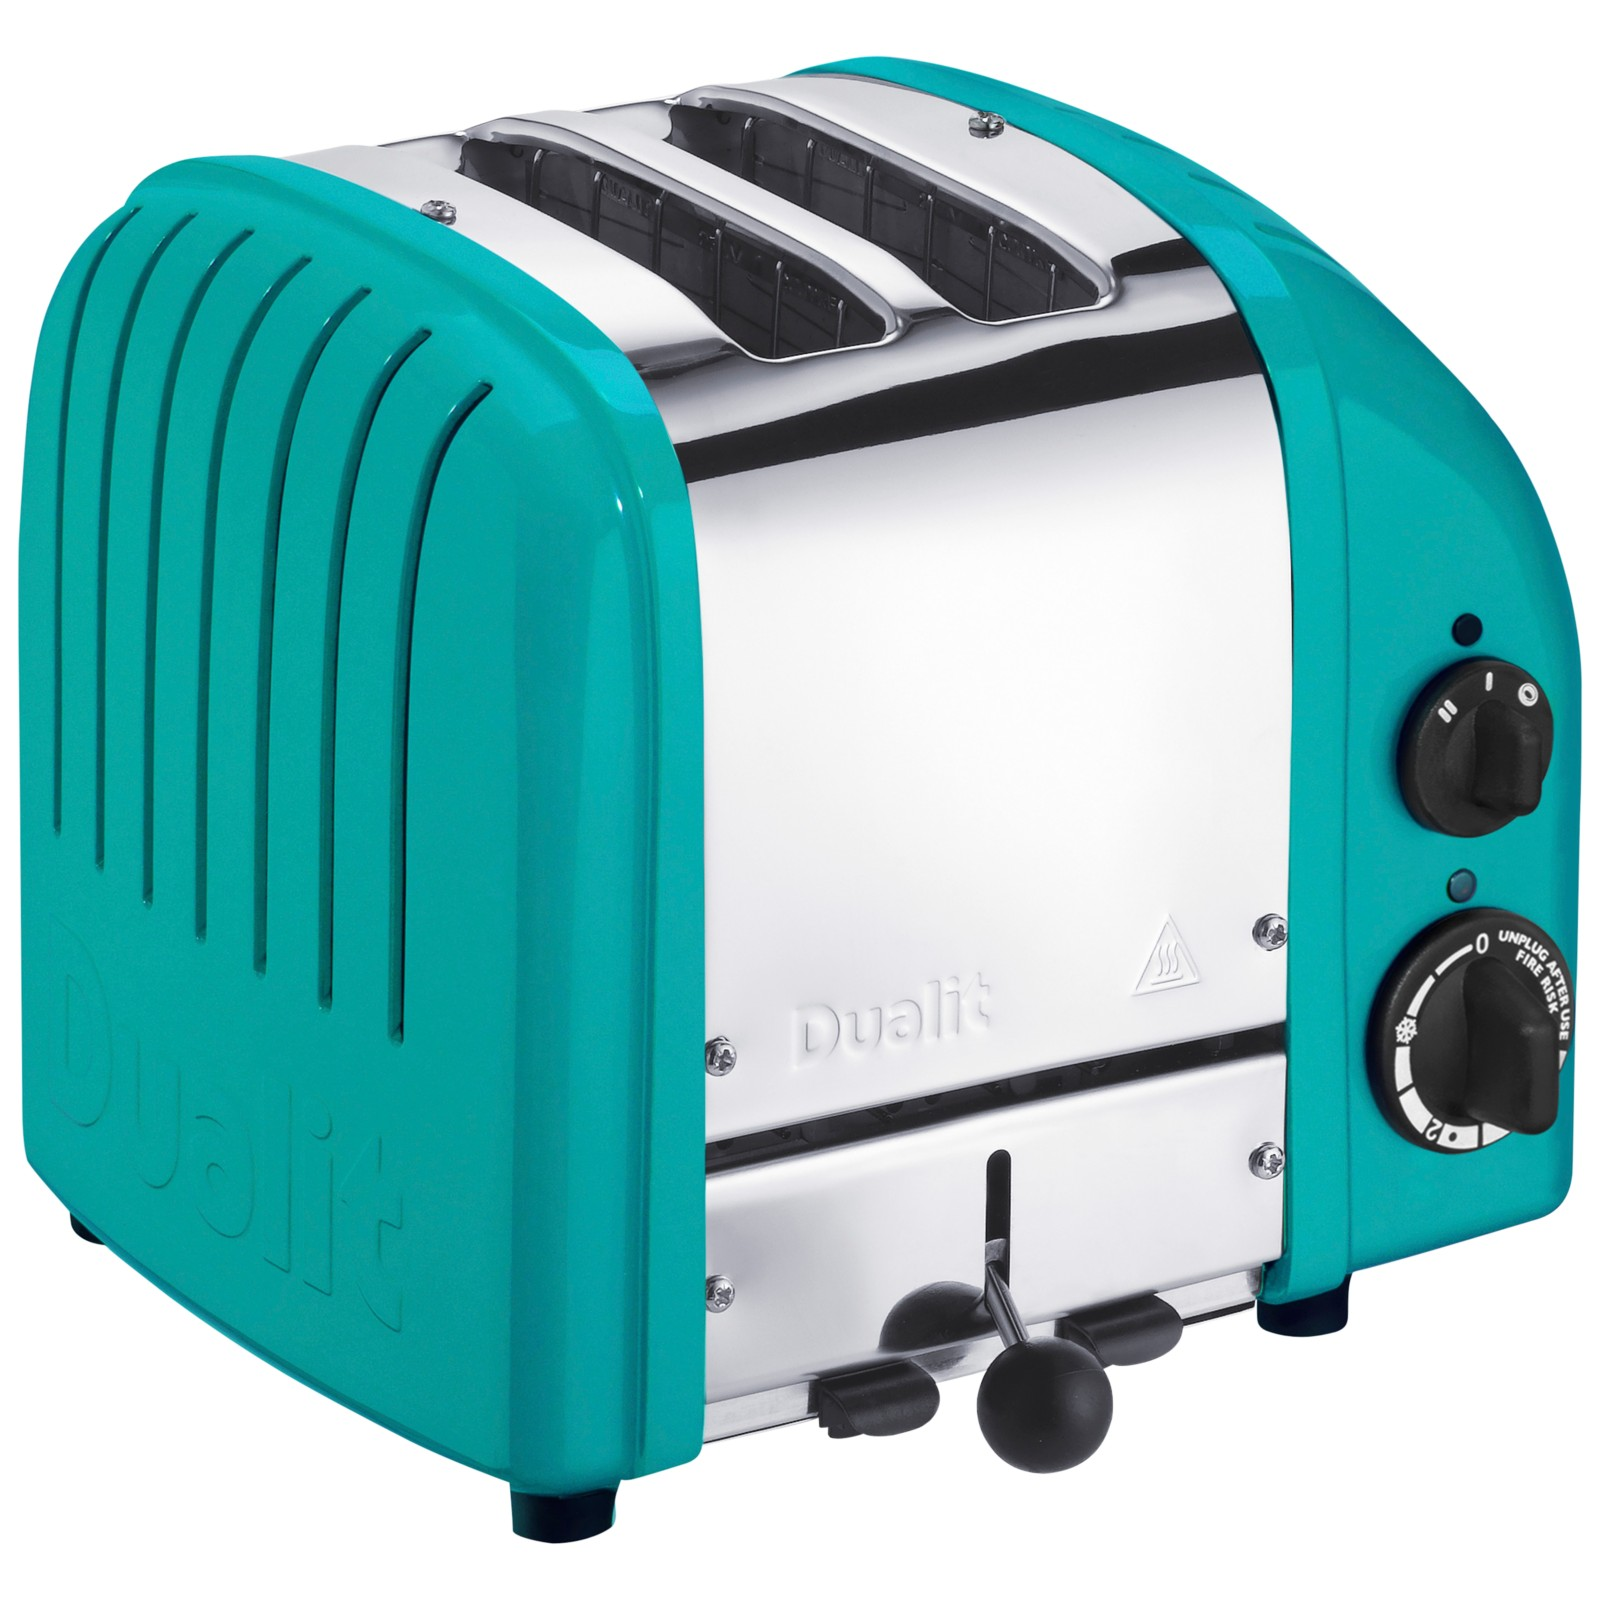 Dualit Made to Order Classic 2-Slice Toaster Stainless Steel/Turquoise Blue Gloss